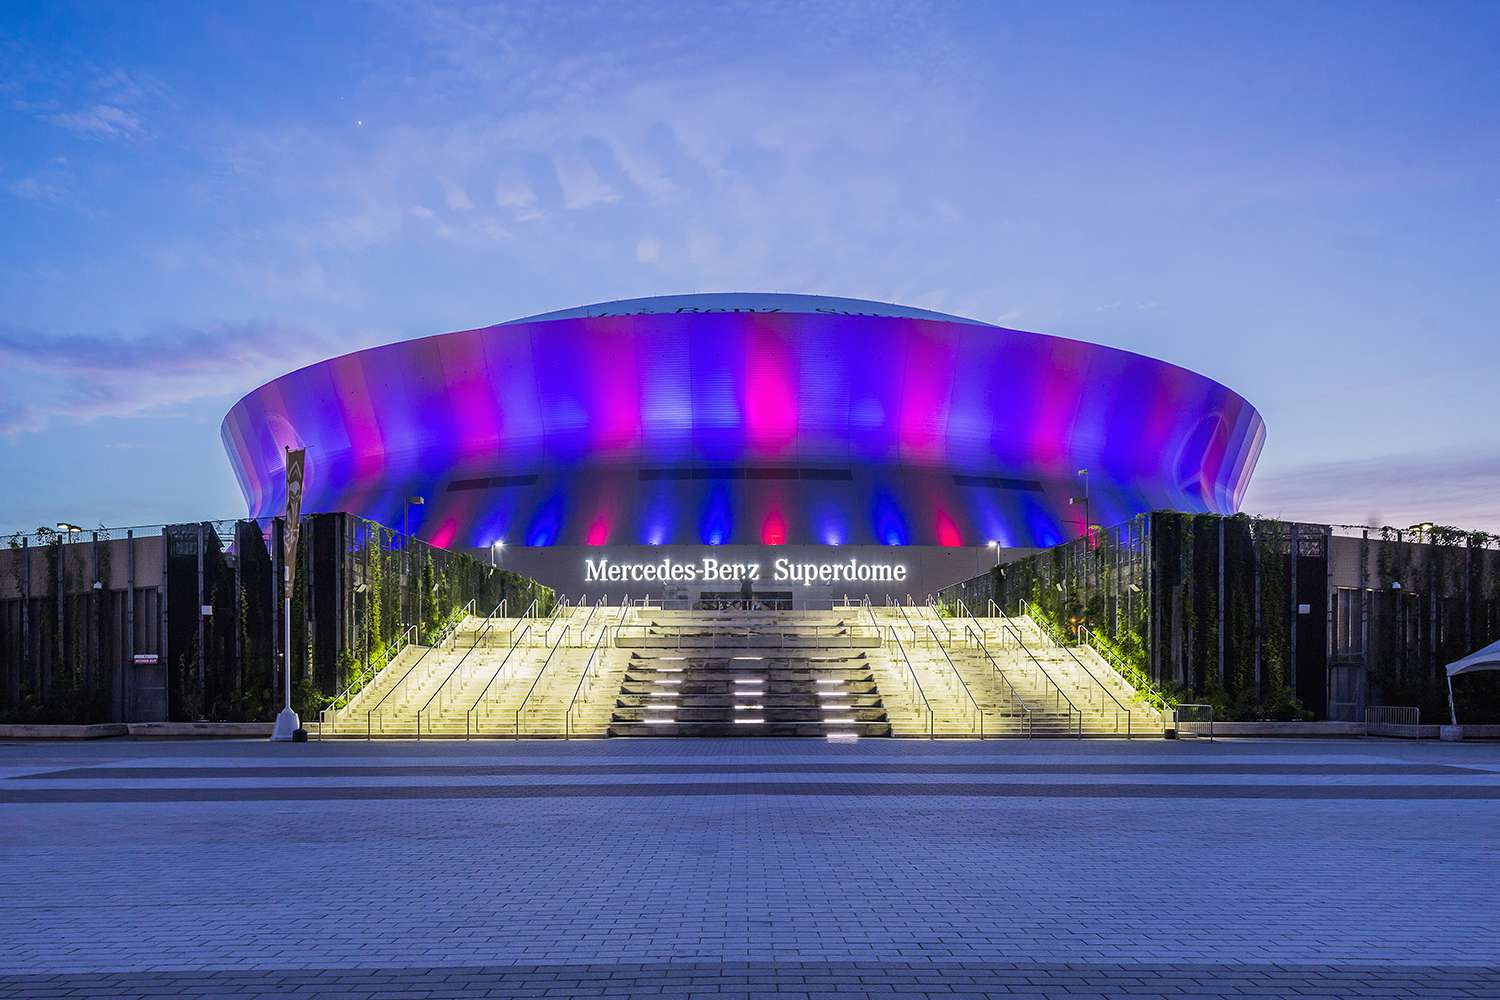 Central Business District, view of the Mercedes-Benz Superdome